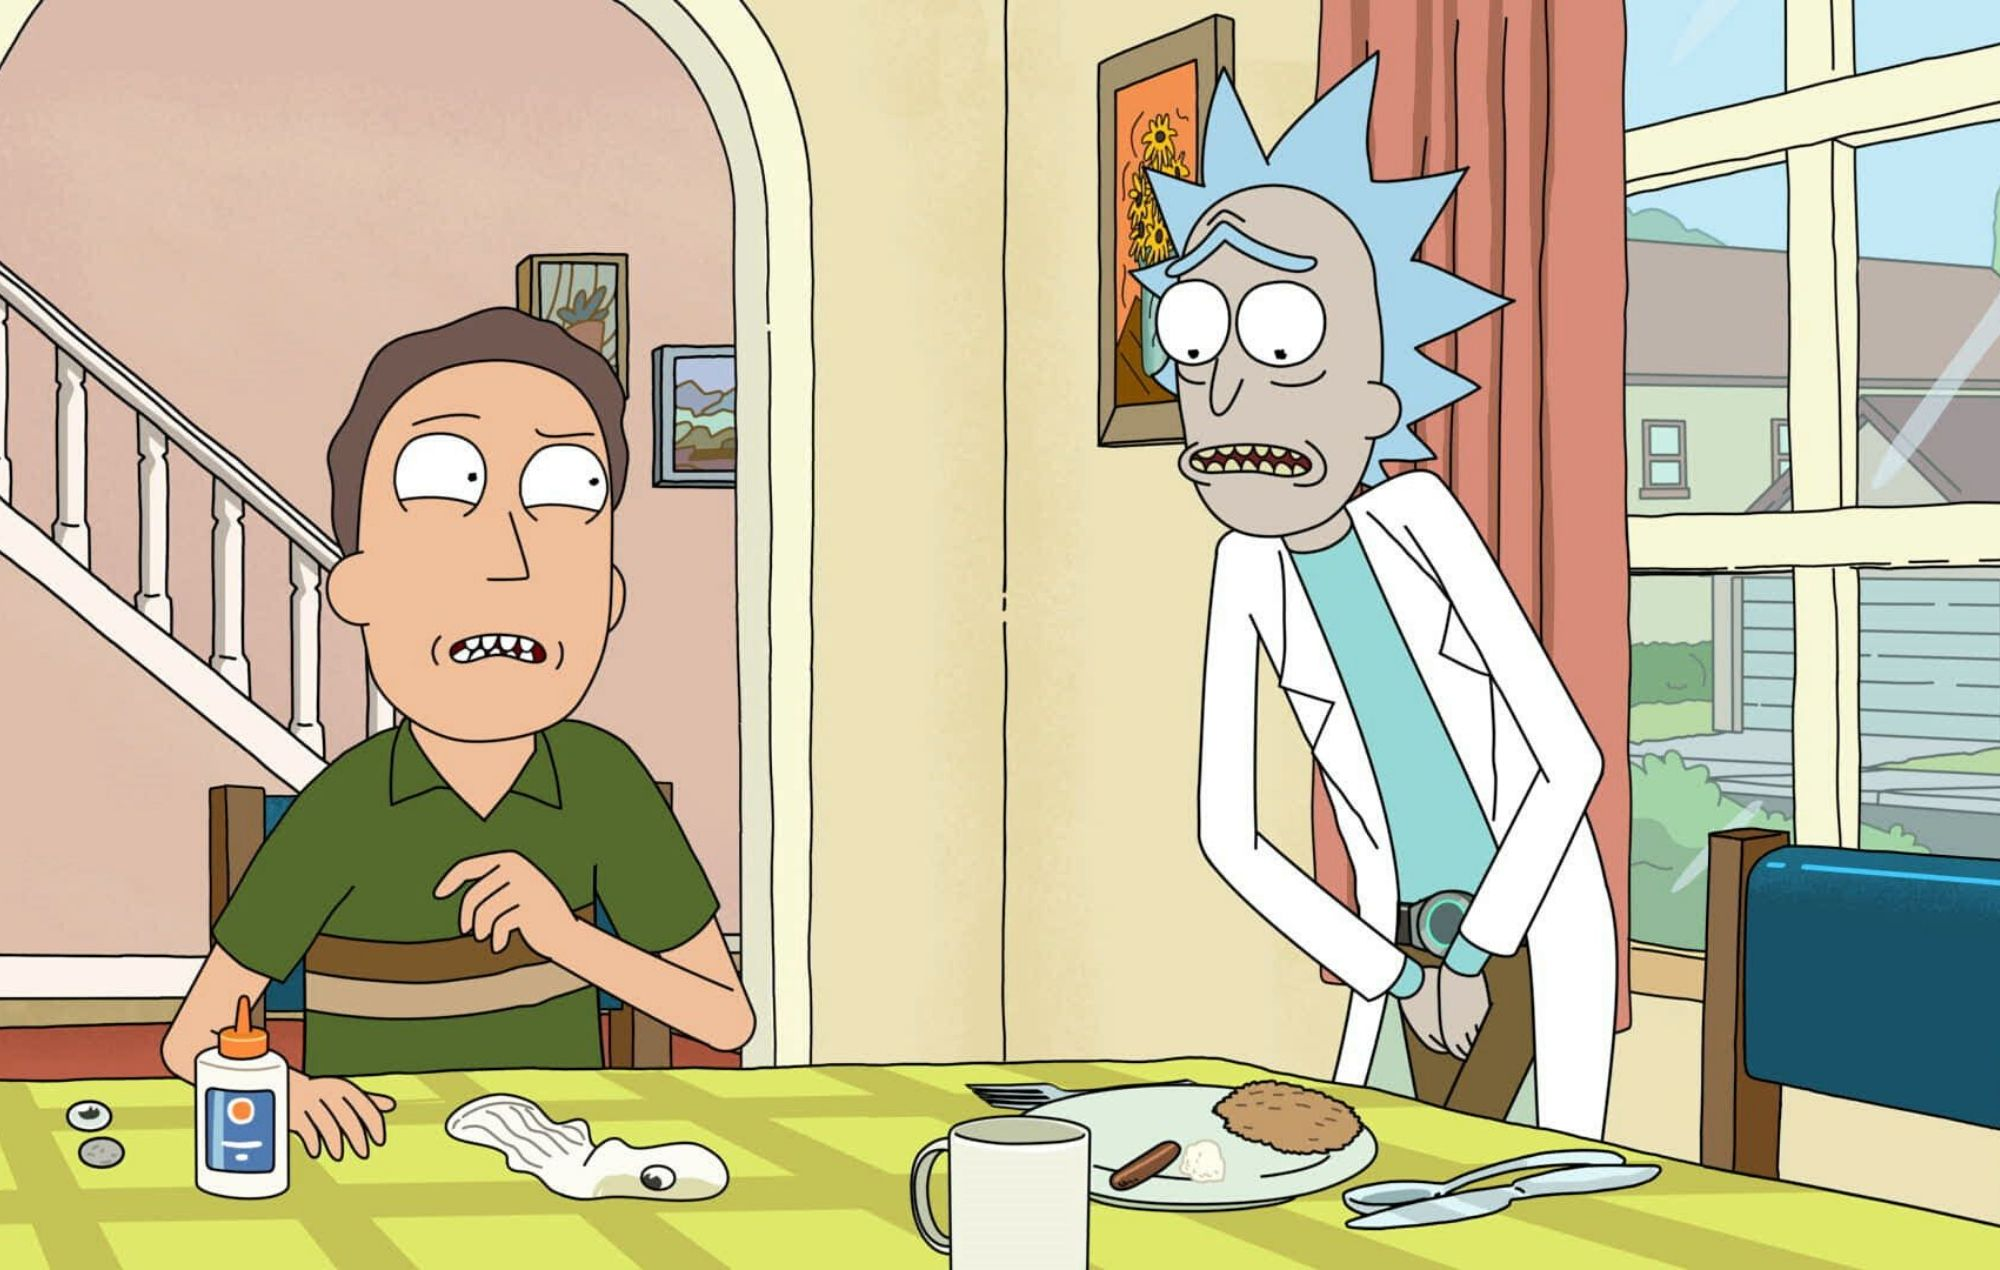 Rick and Morty Season 4 Episode 9 Plot Spoilers and Synopsis